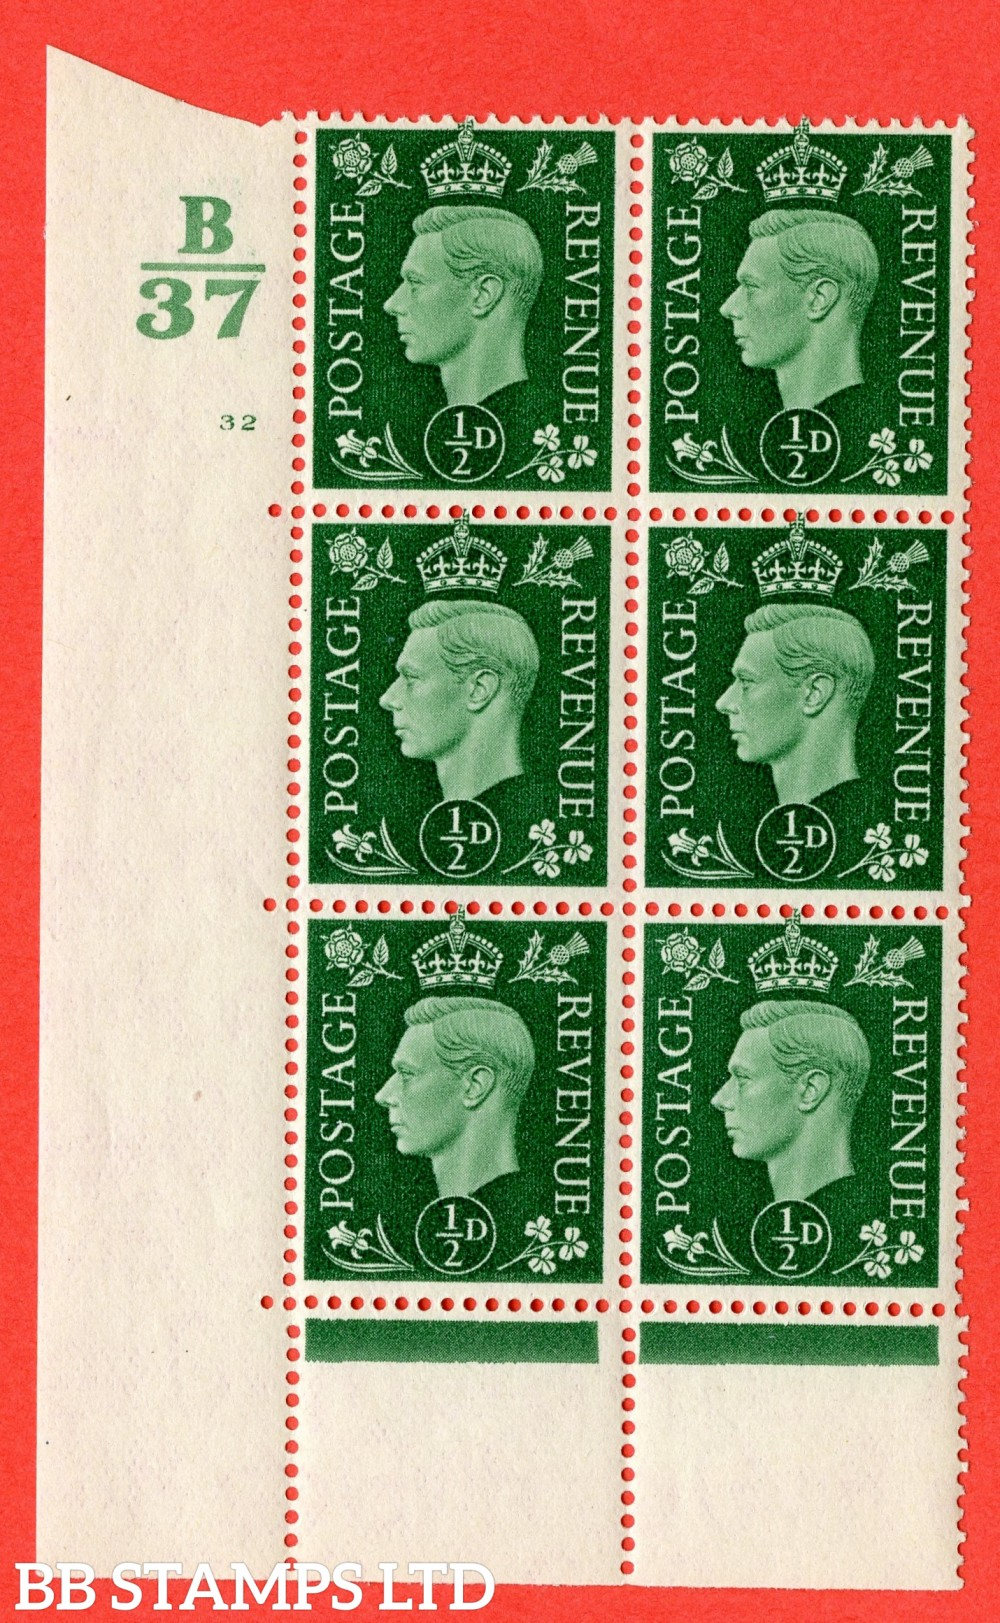 "SG. 462. Q1. ½d Green. A superb UNMOUNTED MINT "" Control B37 cylinder 32 no dot "" block of 6 with perf type 5 E/I with marginal rule."